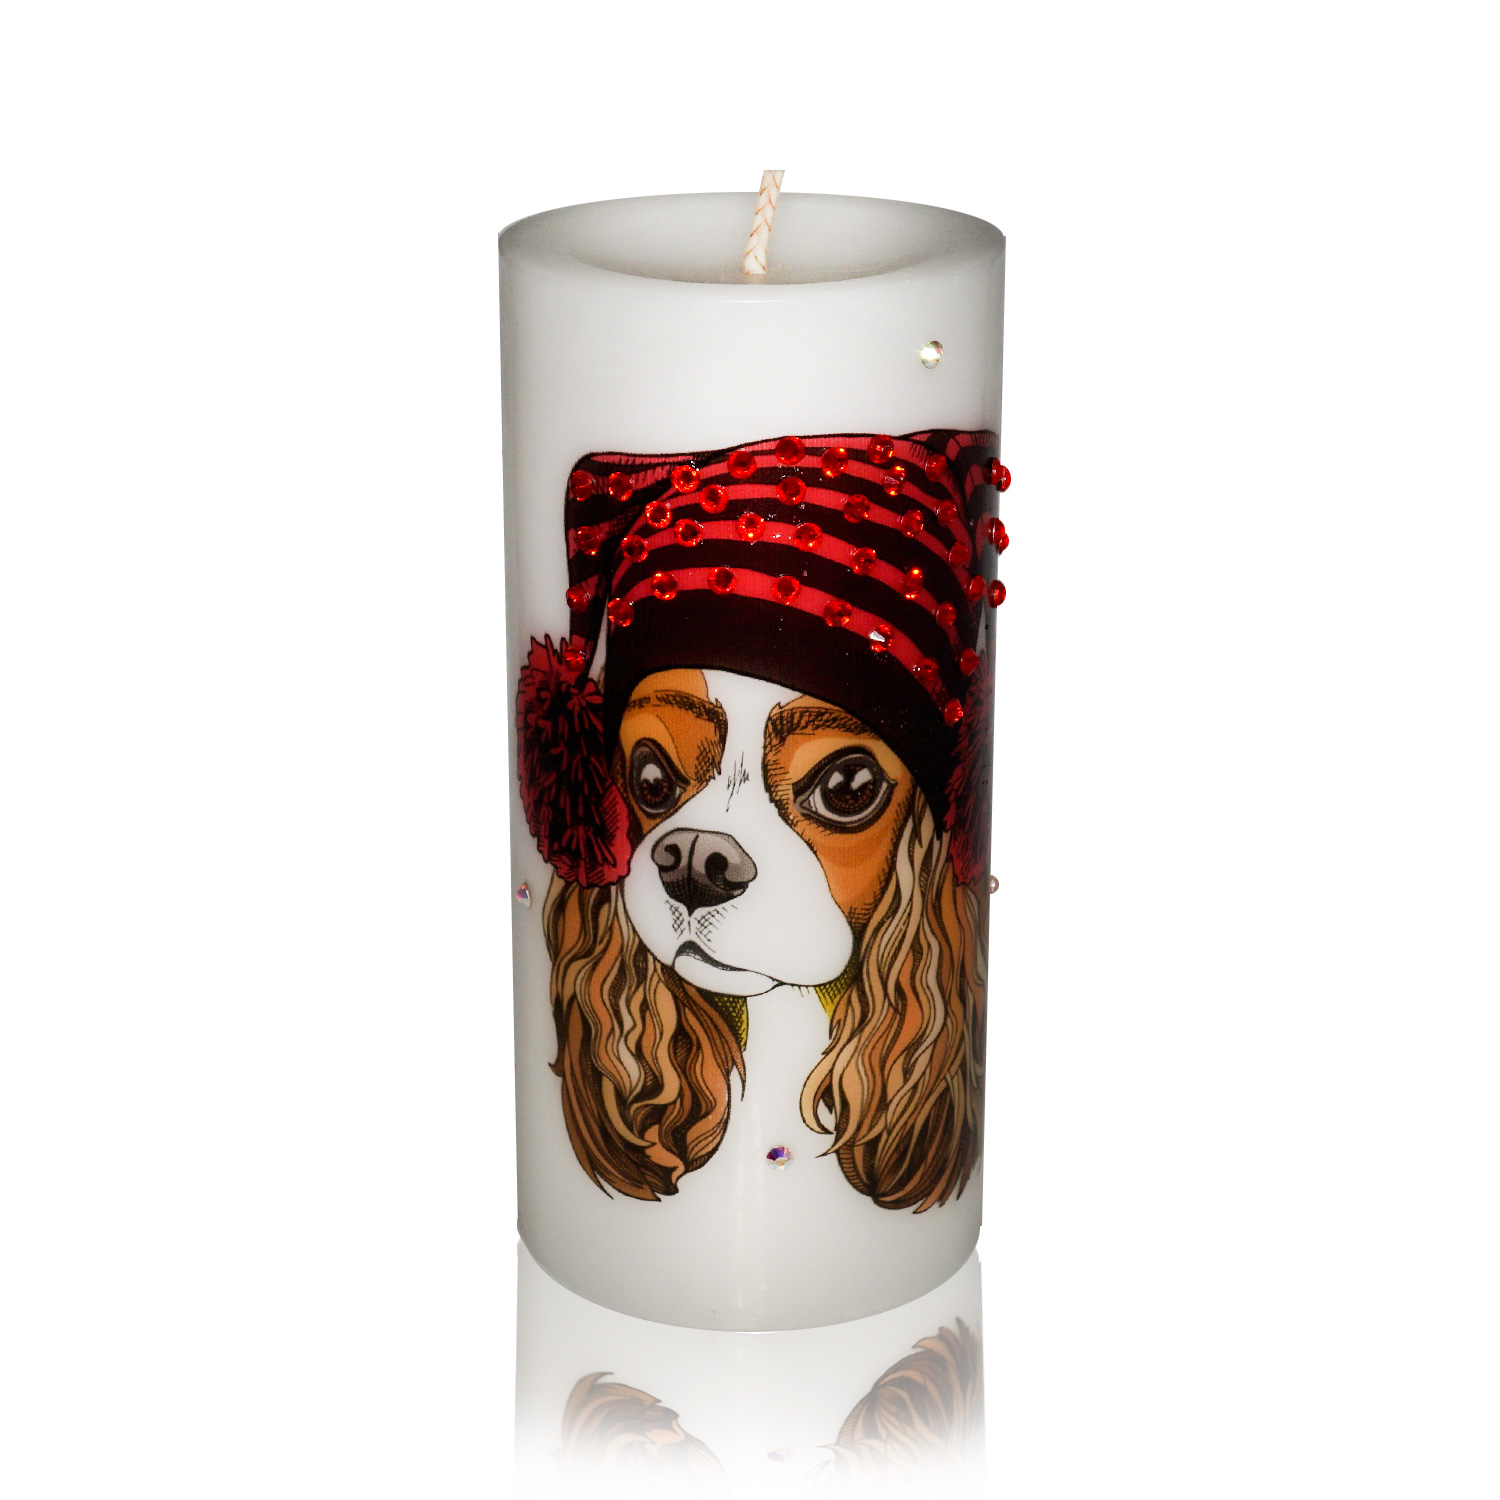 Luxury New Year of the Dog Pillar Candle – Cavalier King Charles Spaniel Gift Candle Hand-printed with Rhinestones